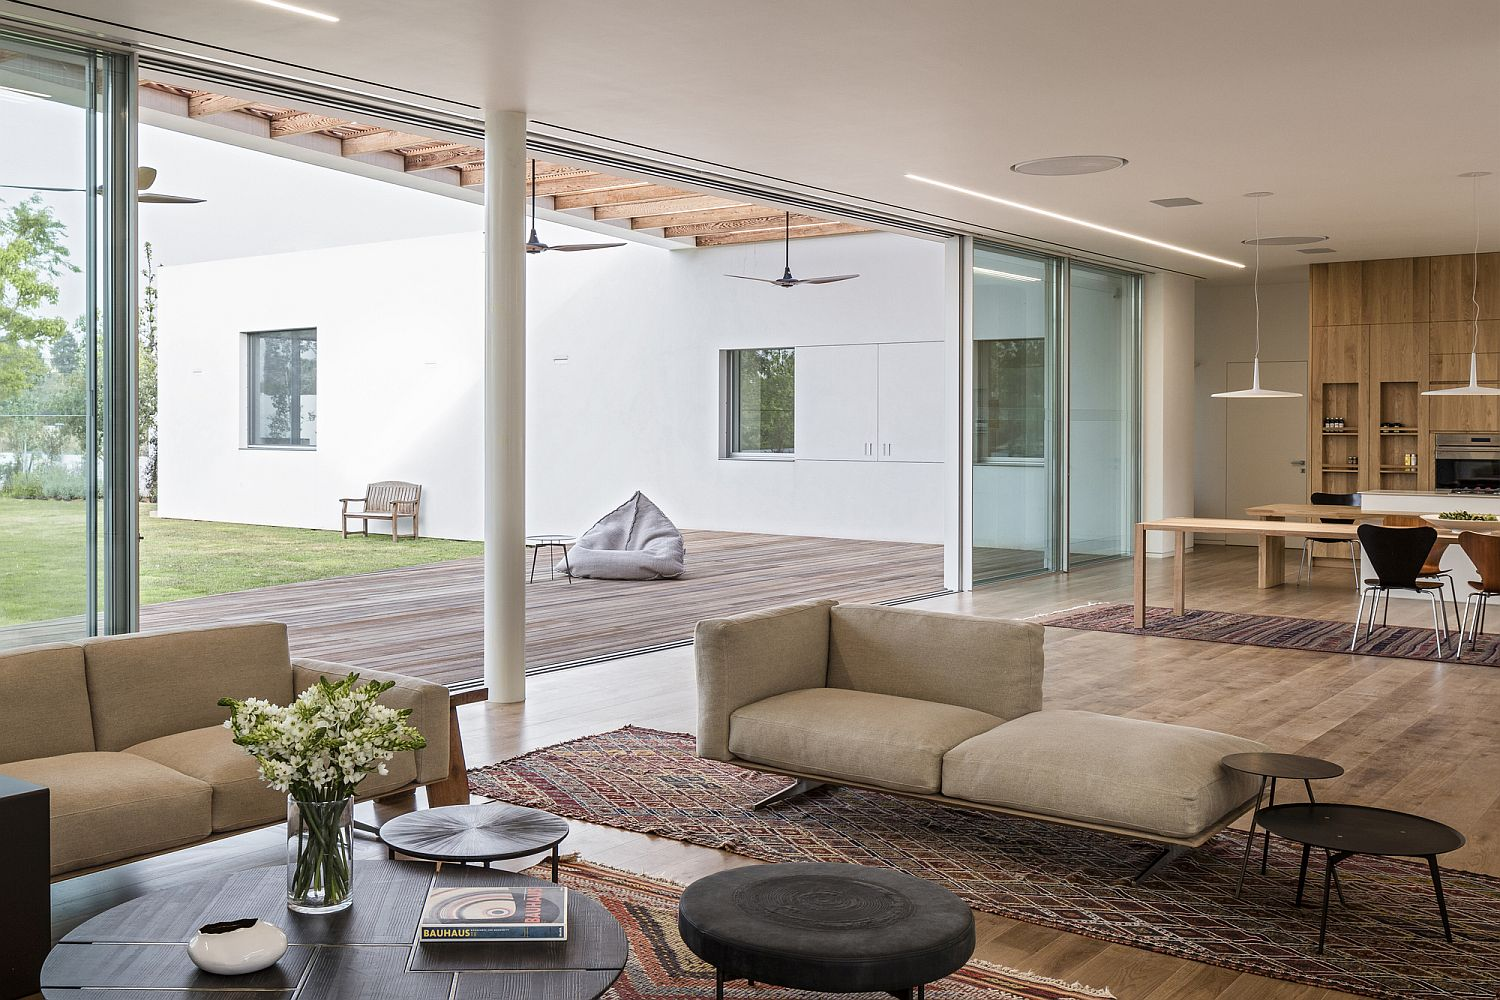 Z House Expansive Israeli Home Flows Into Beautiful Landscape Outside